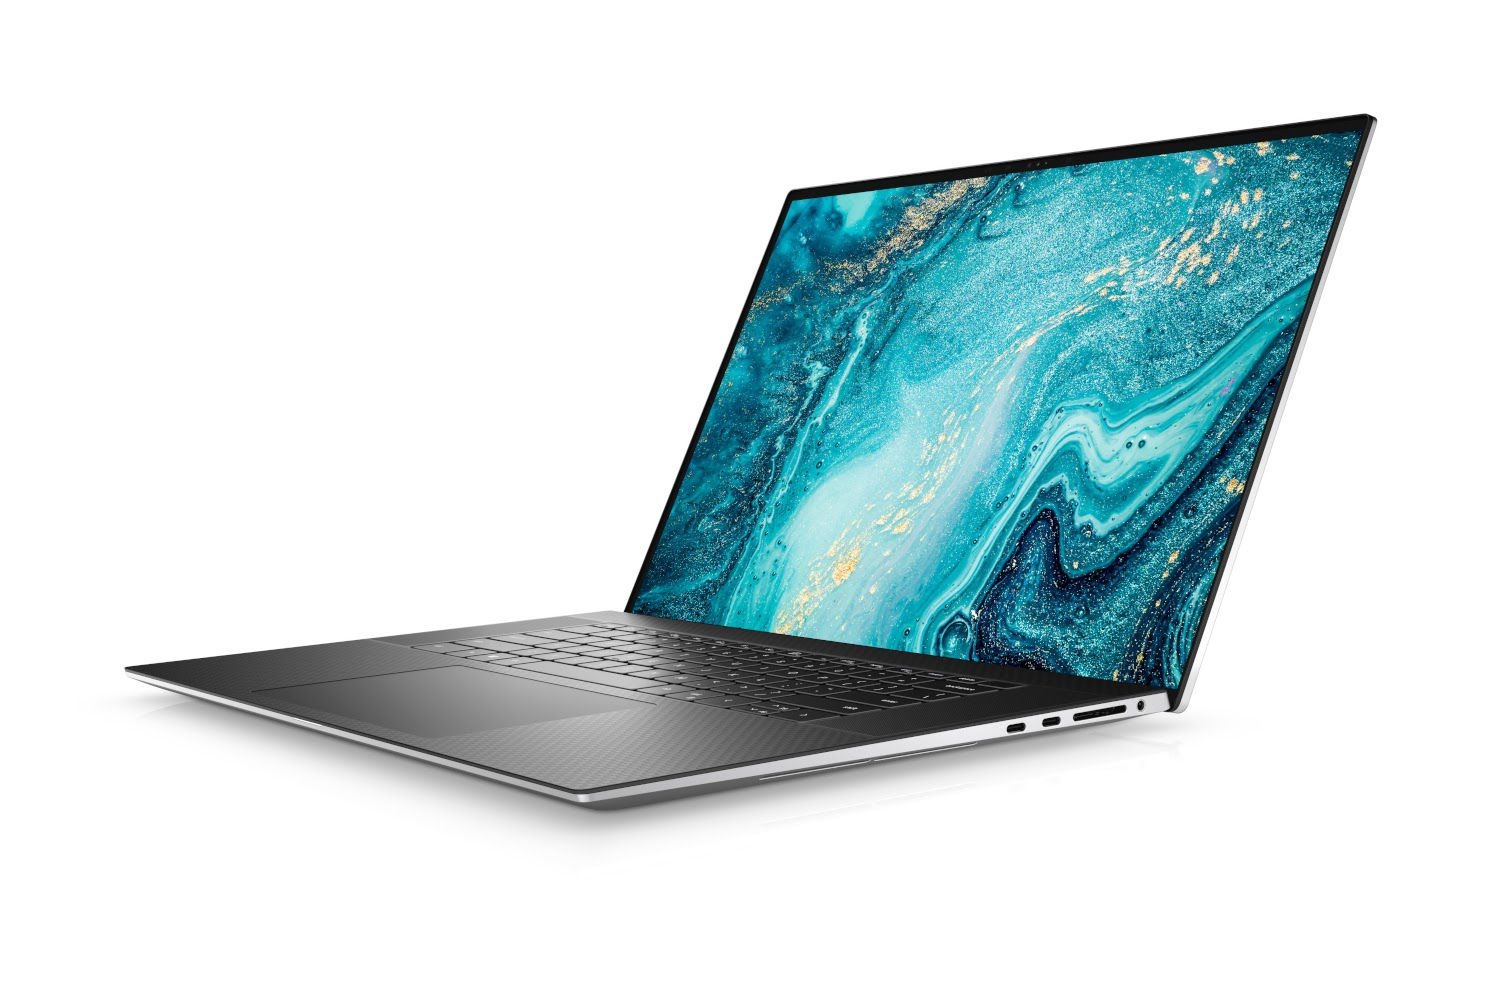 Dell's XPS 17 is among 80 new laptops equipped with Intel 11th-gen H-Series.